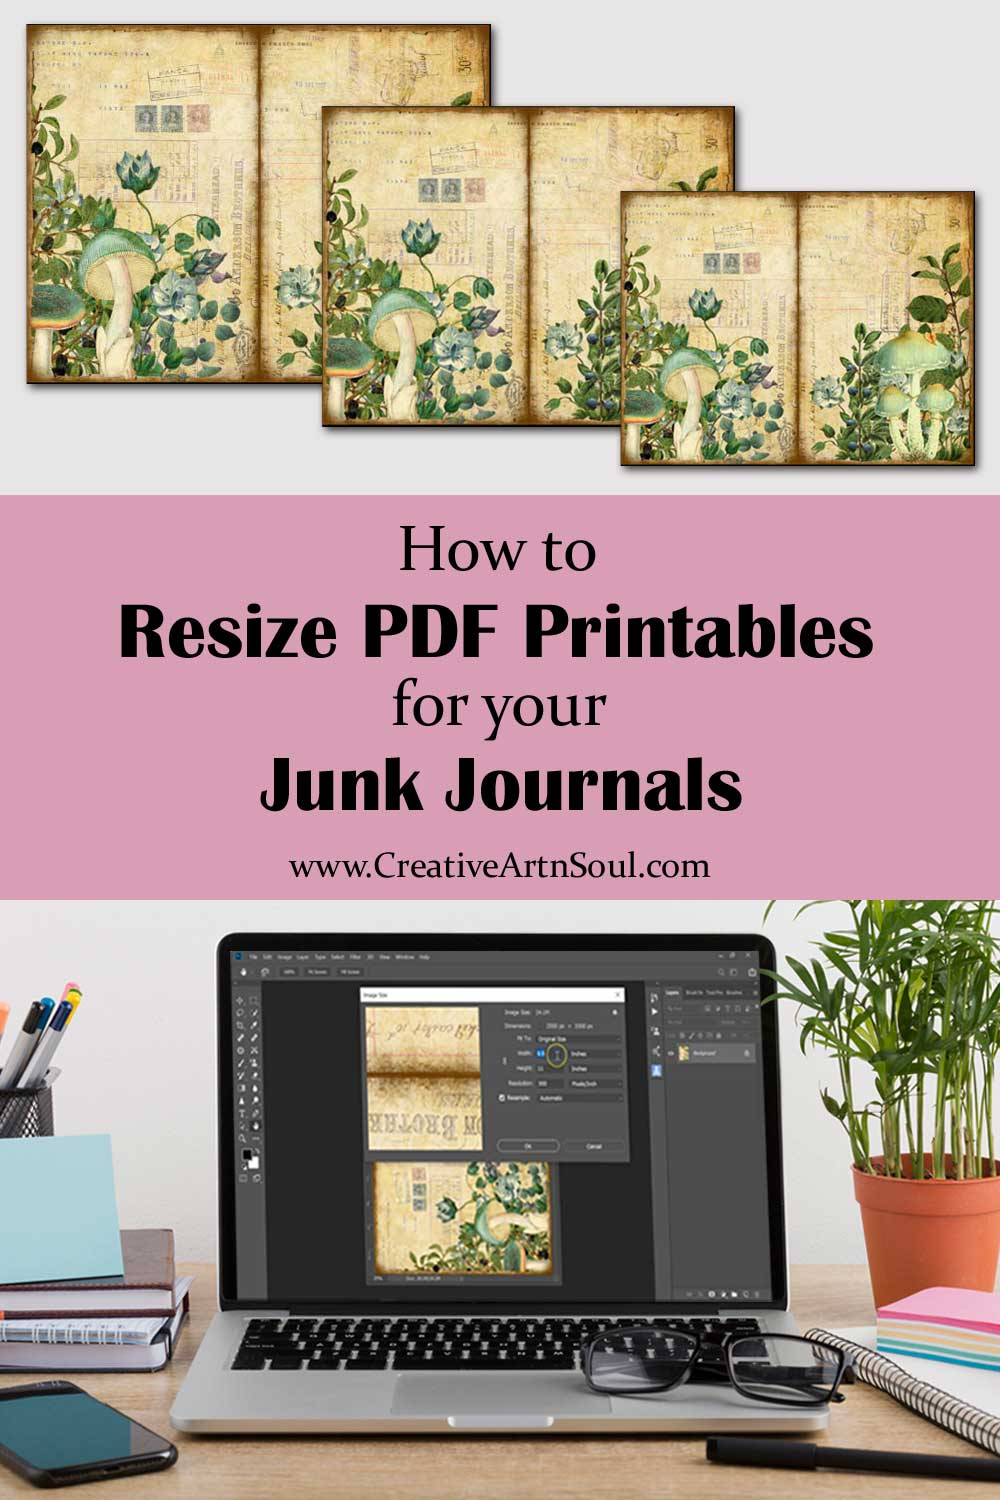 How to Scale or Resize PDF Printable Files